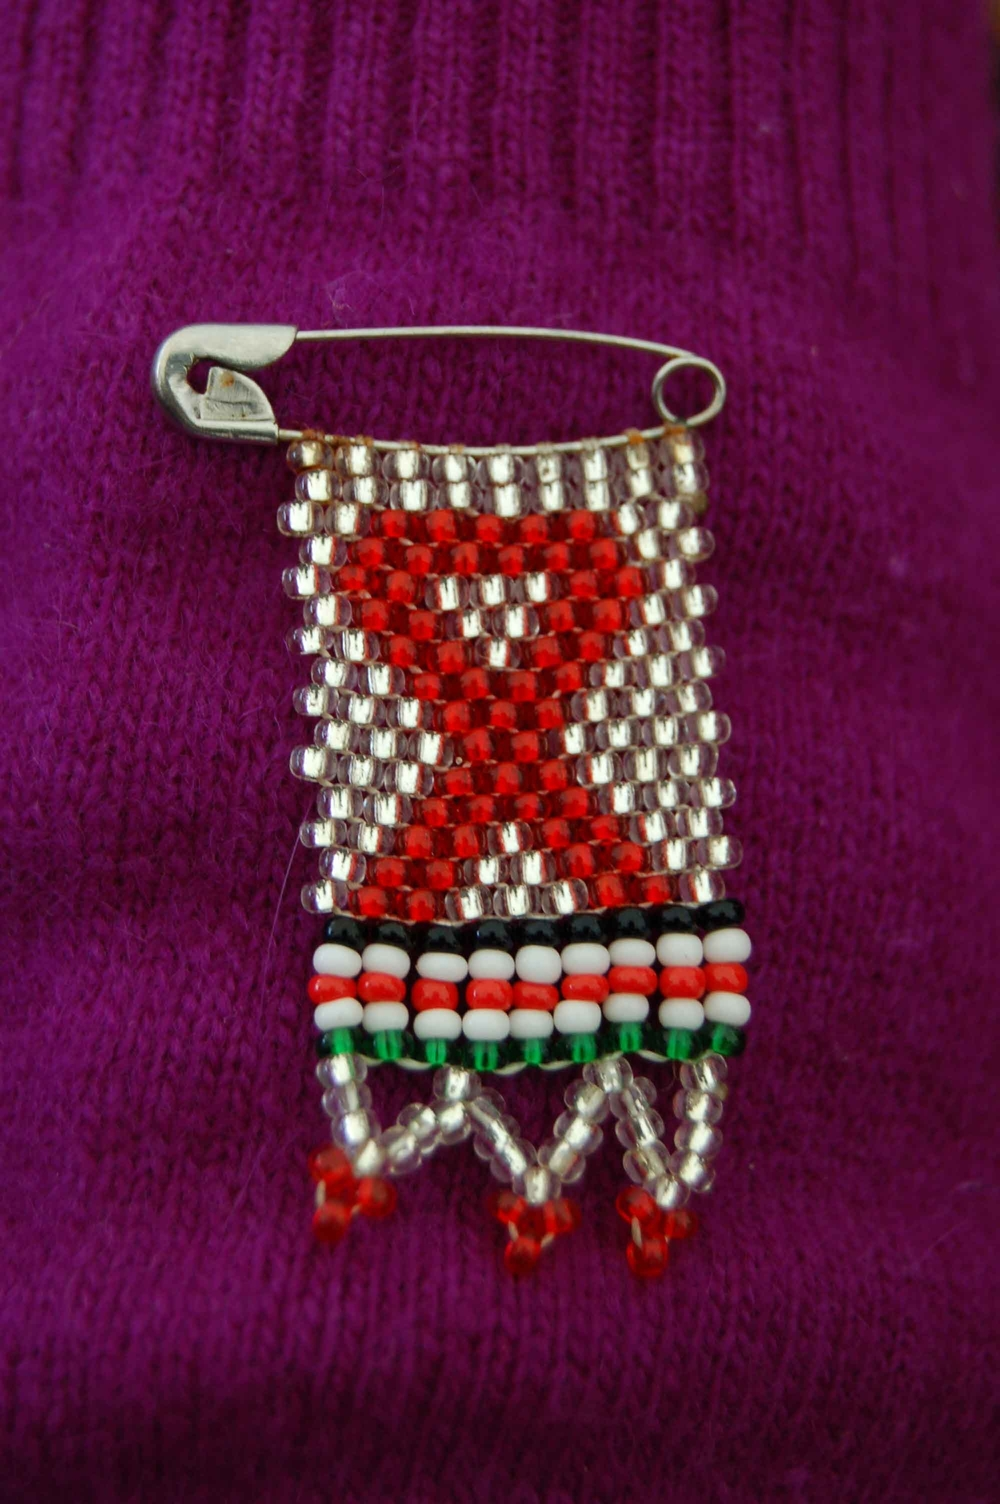 Red ribbon on a pin.